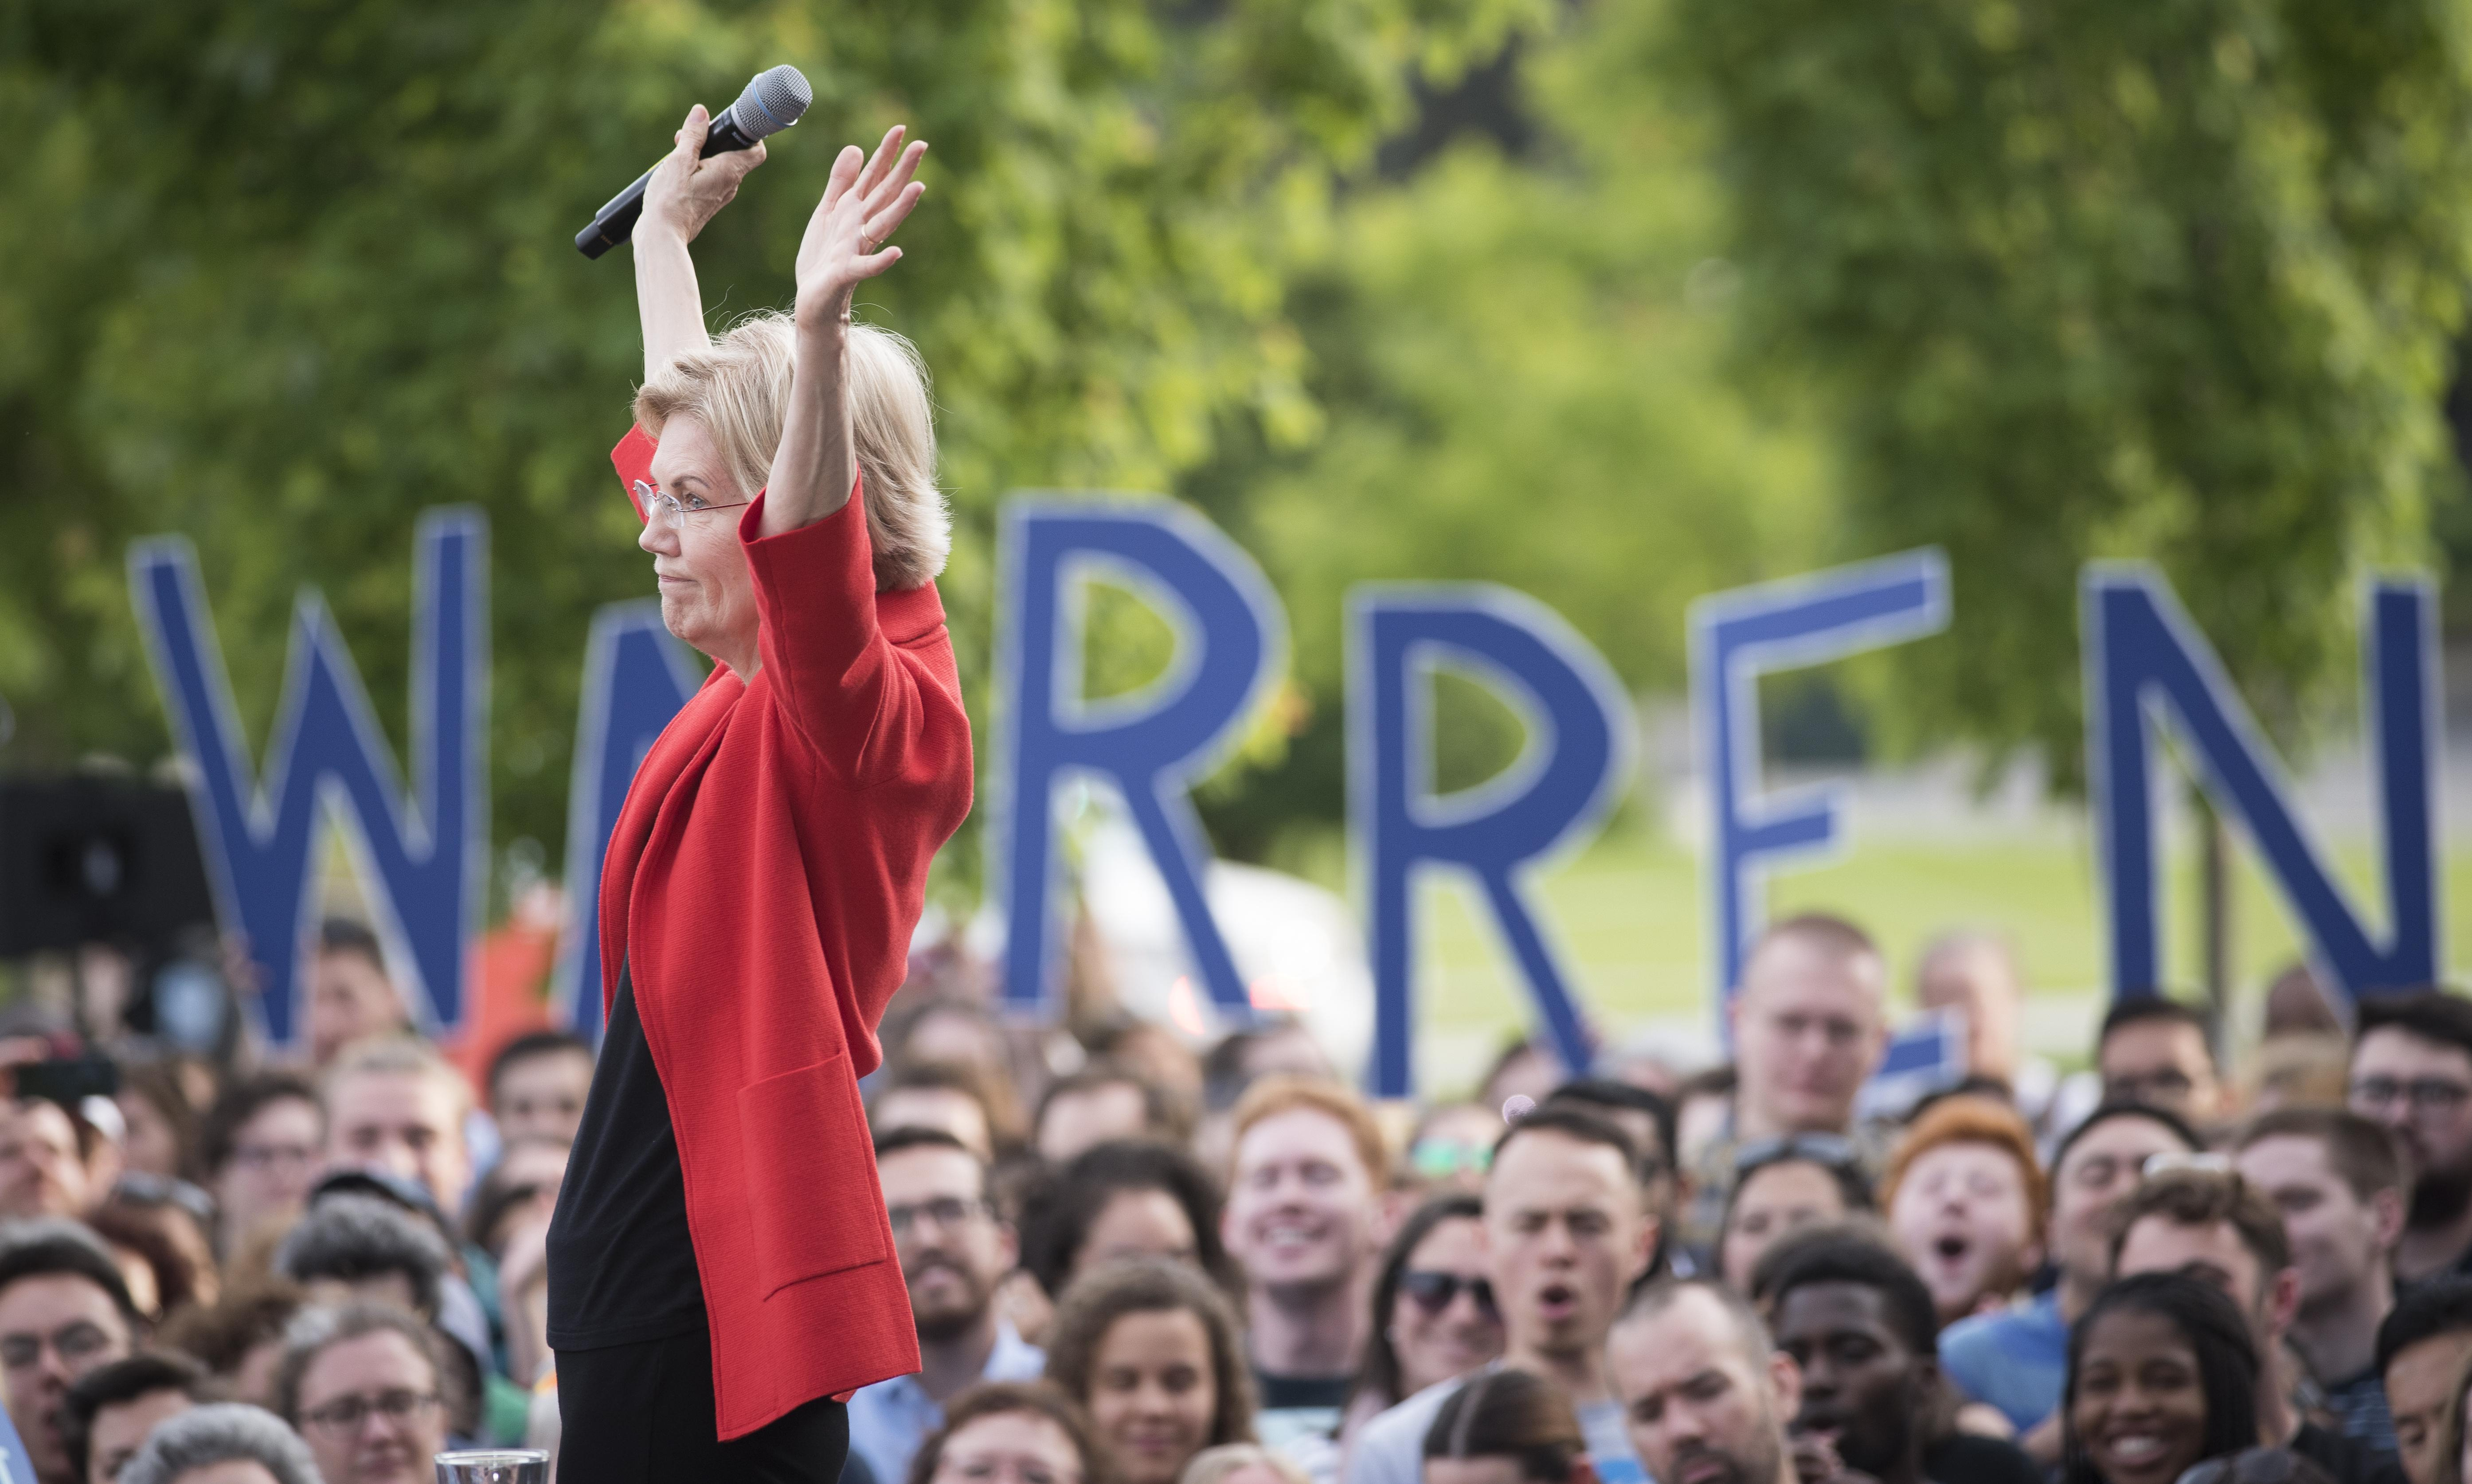 It's not a robocall: Elizabeth Warren calls supporters to talk issues